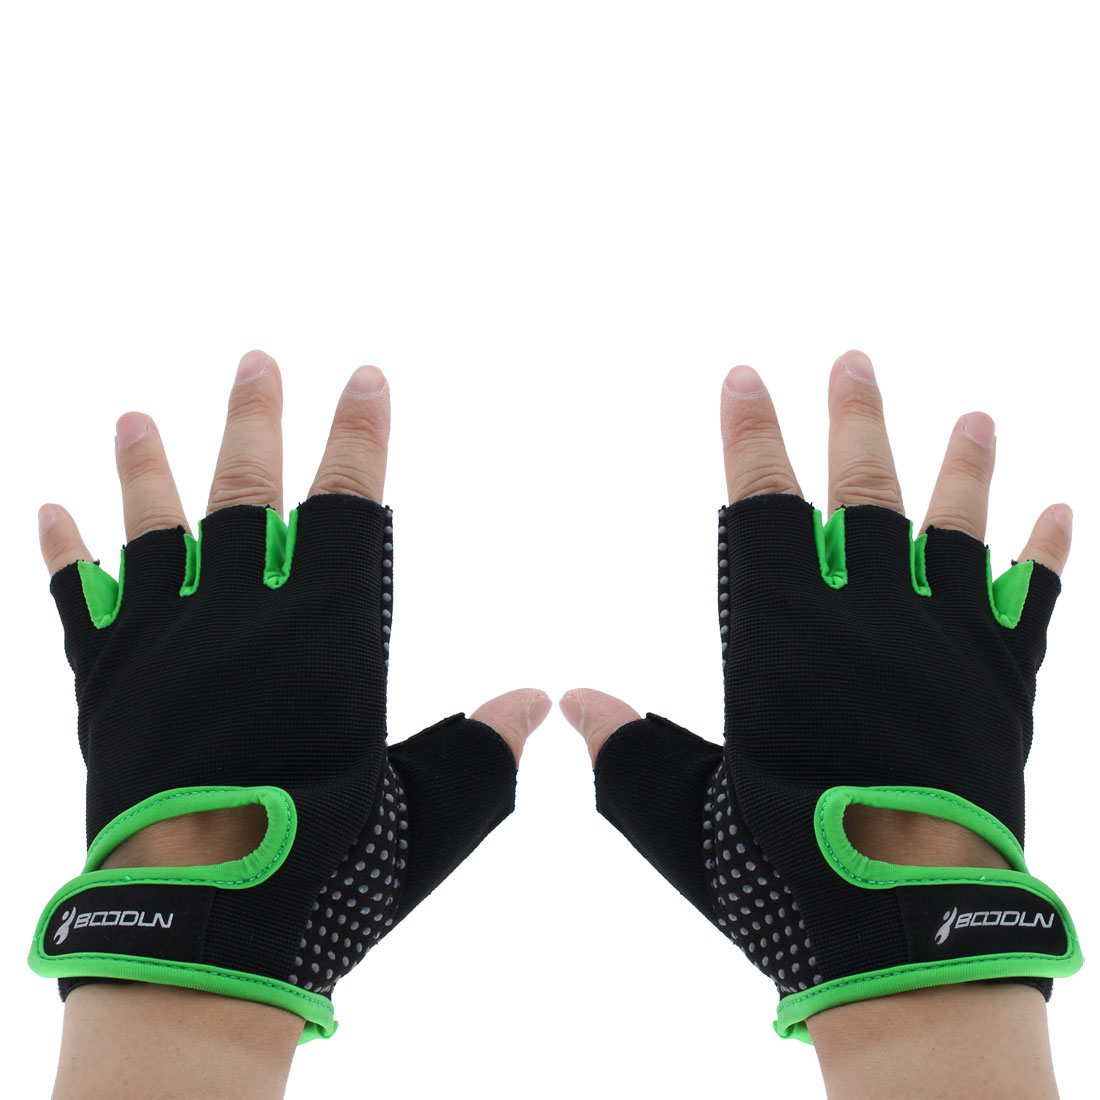 BOODUN Authorized Exercise Weight Biking Lifting Training Microfiber Non-slip Fitness Half Finger Gloves Green S